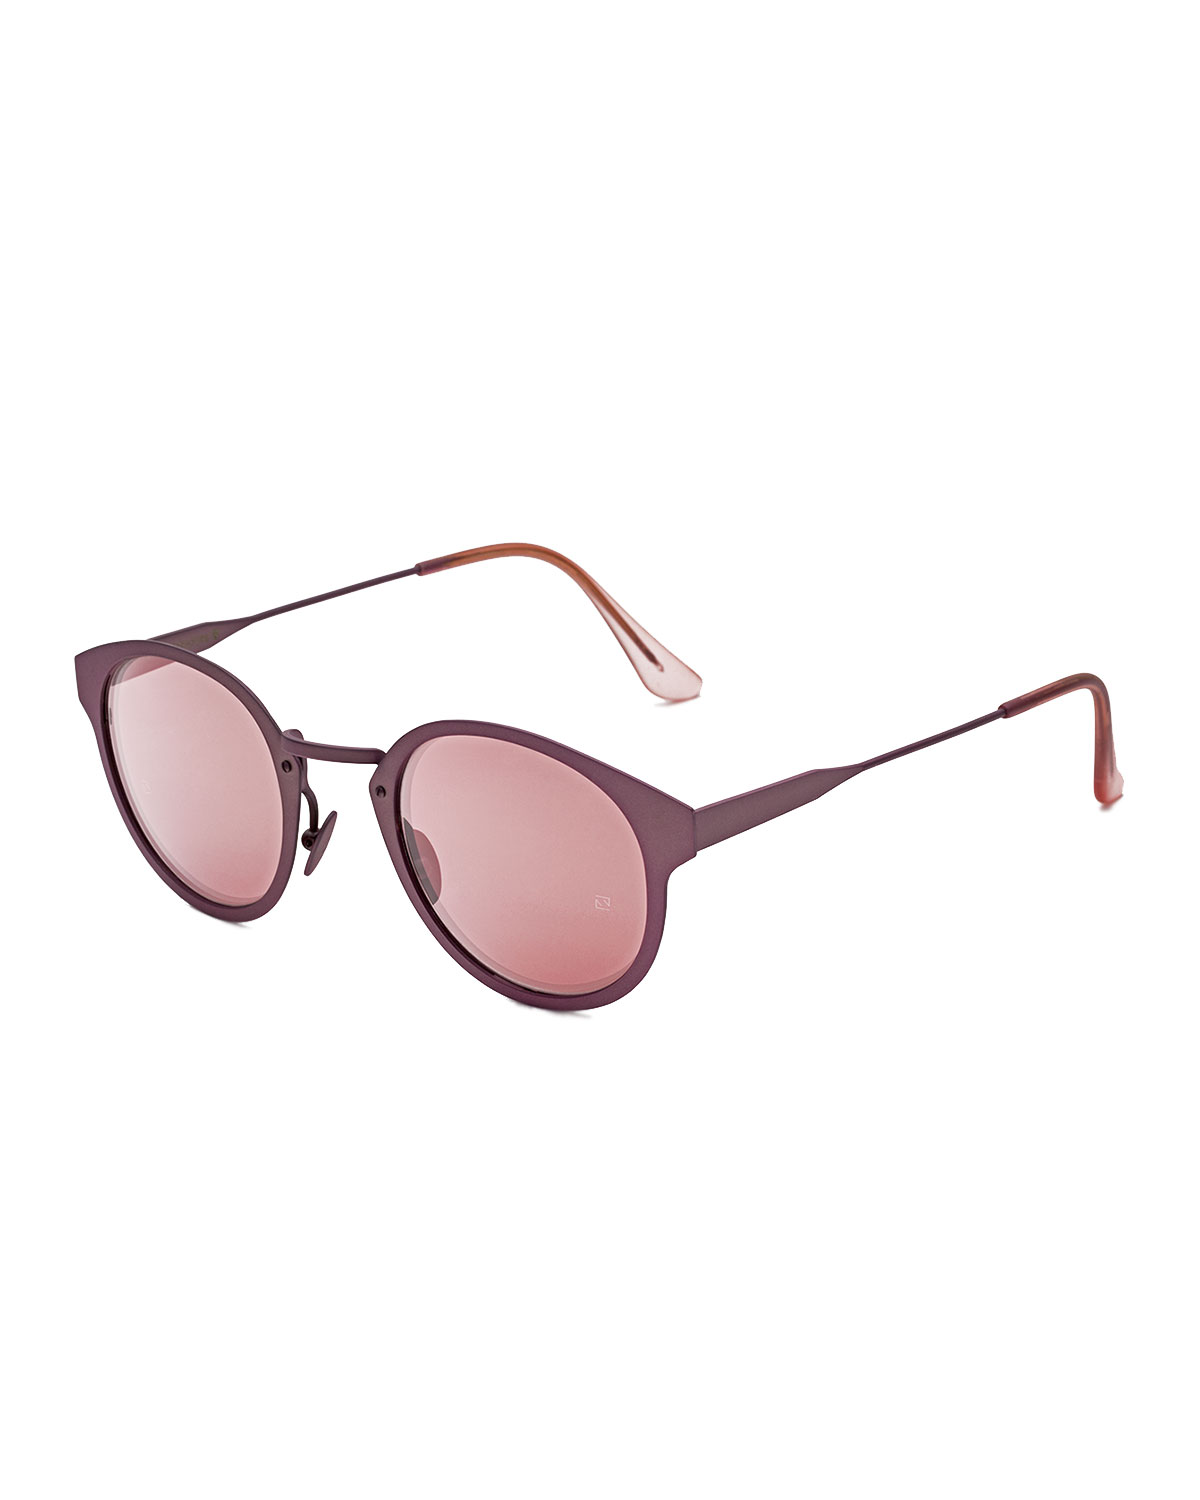 708563effe4d35 Super by Retrosuperfuture Panama Synthesis Round Sunglasses